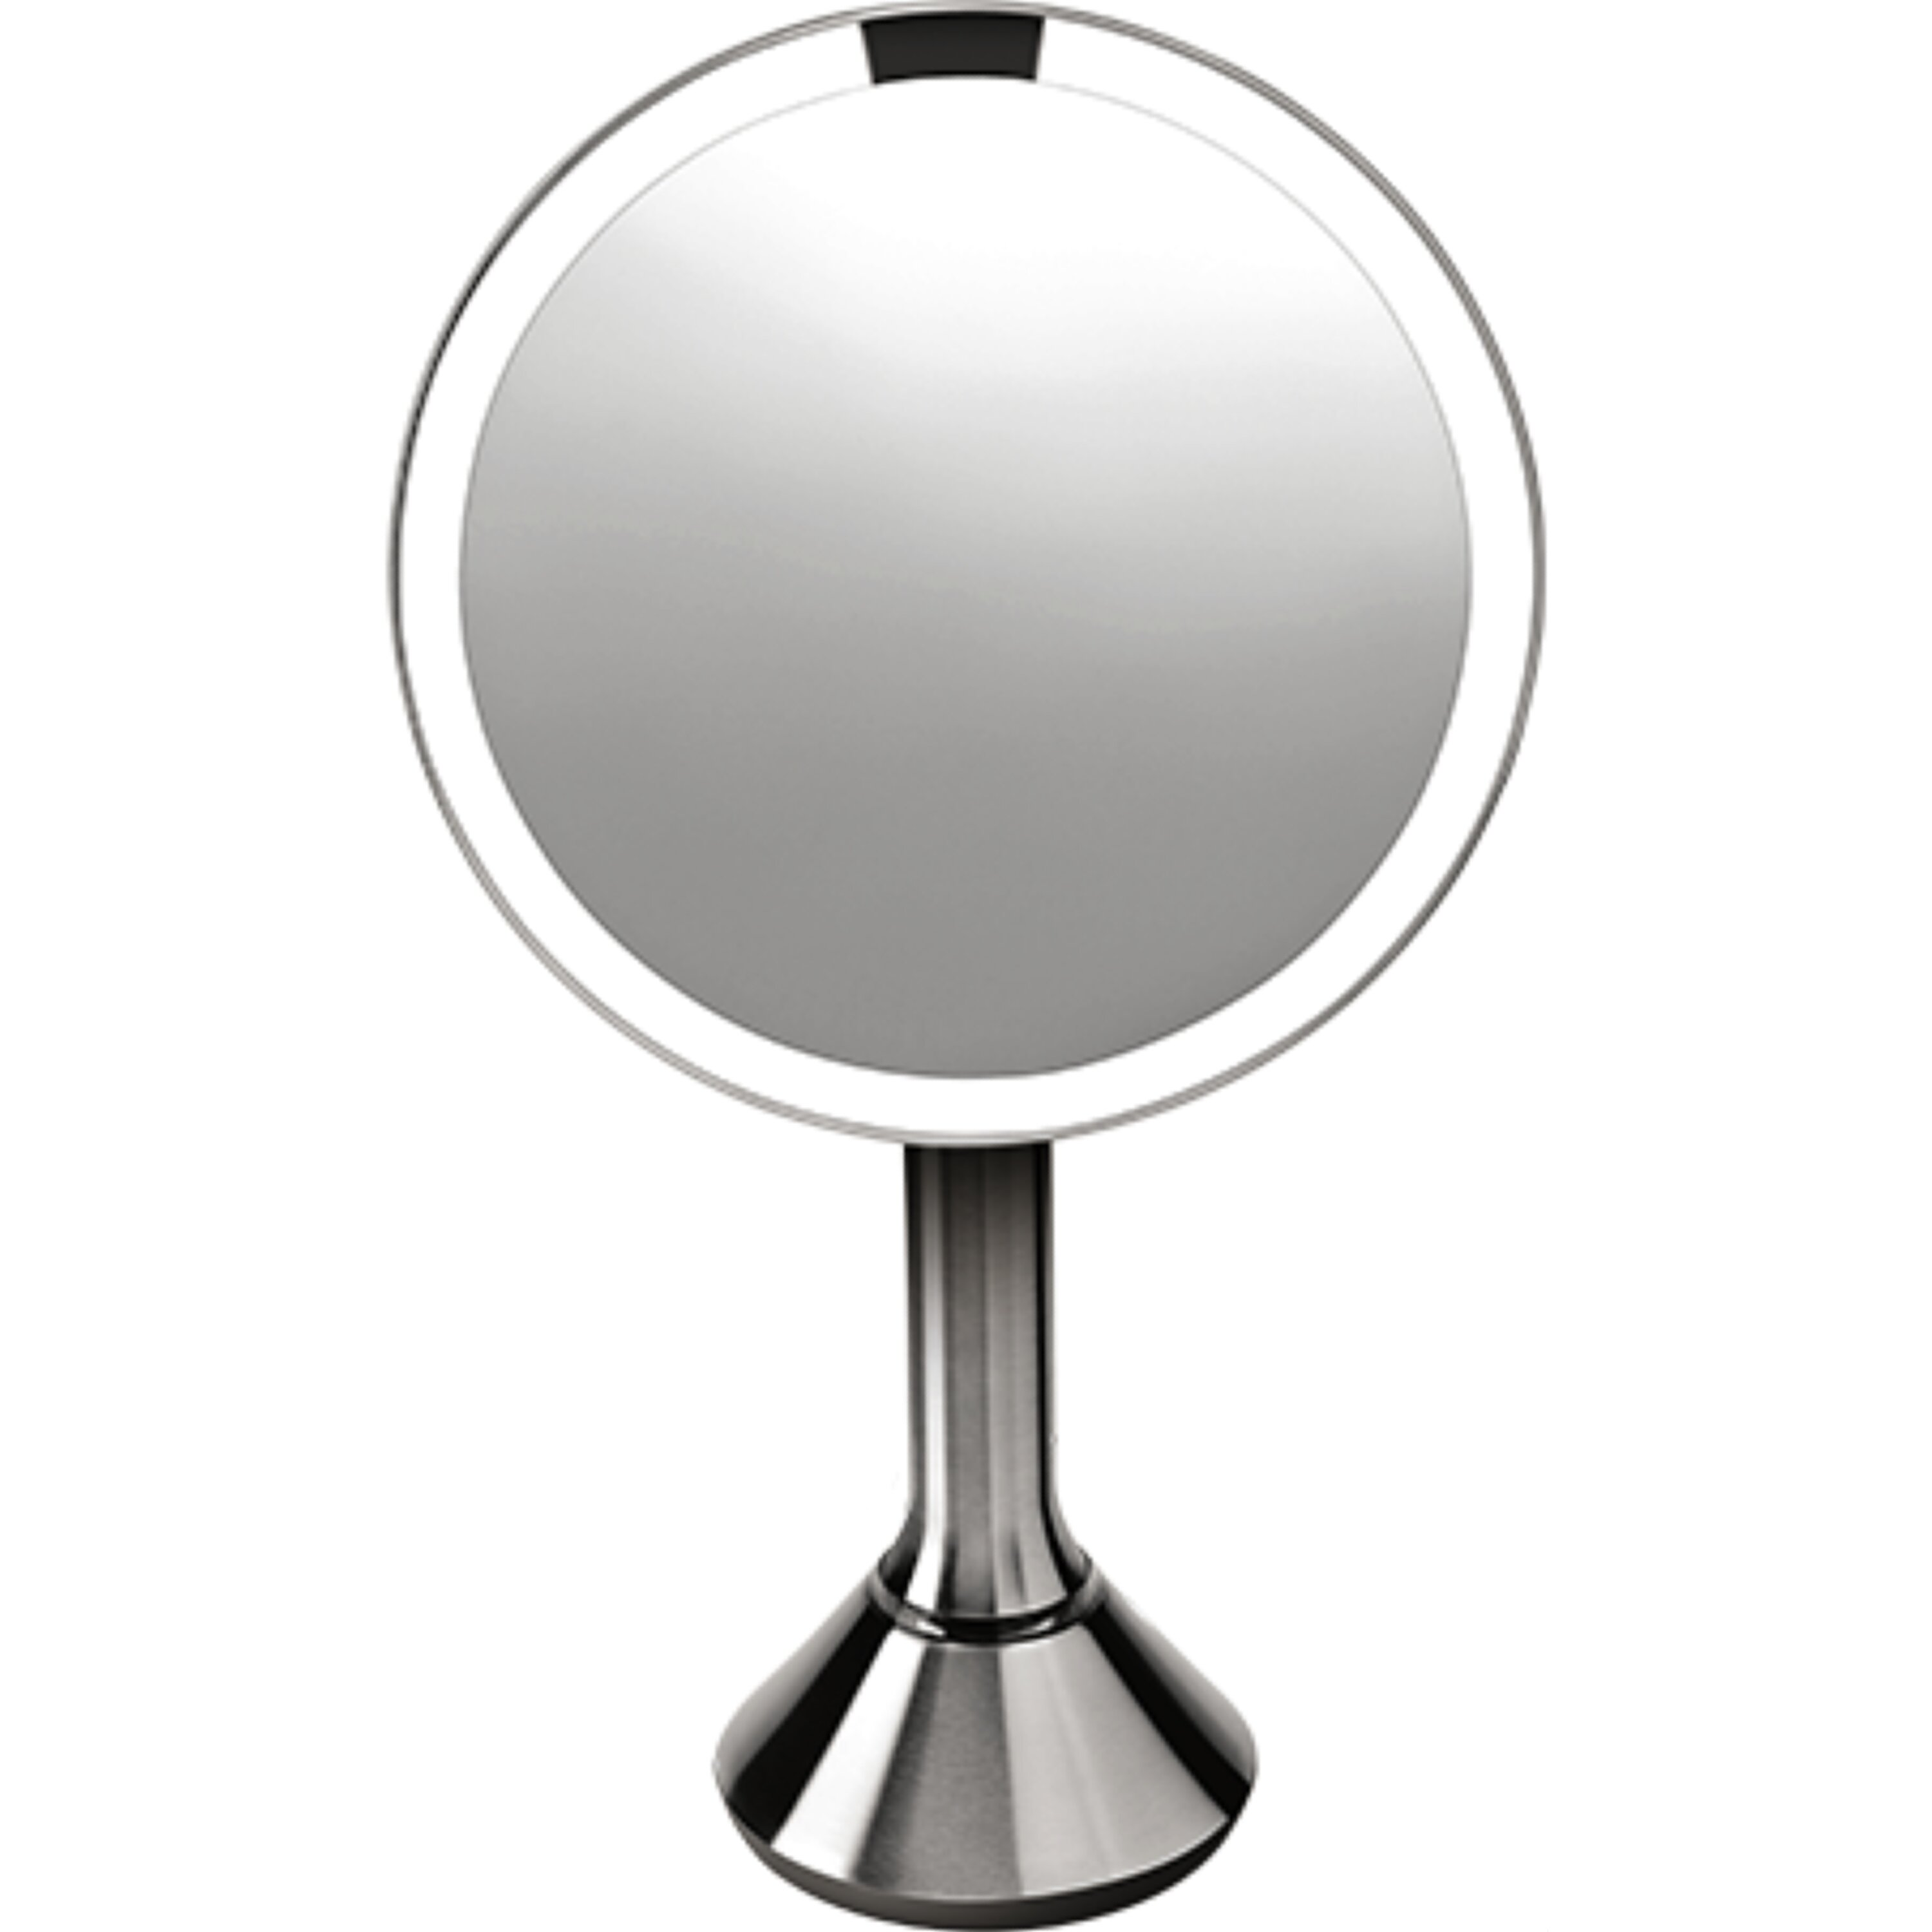 simplehuman Sensor Activated Lighted Vanity Mirror  5x Magnification  8 in. Sensor Activated Lighted Vanity Mirror  5x Magnification  8 in